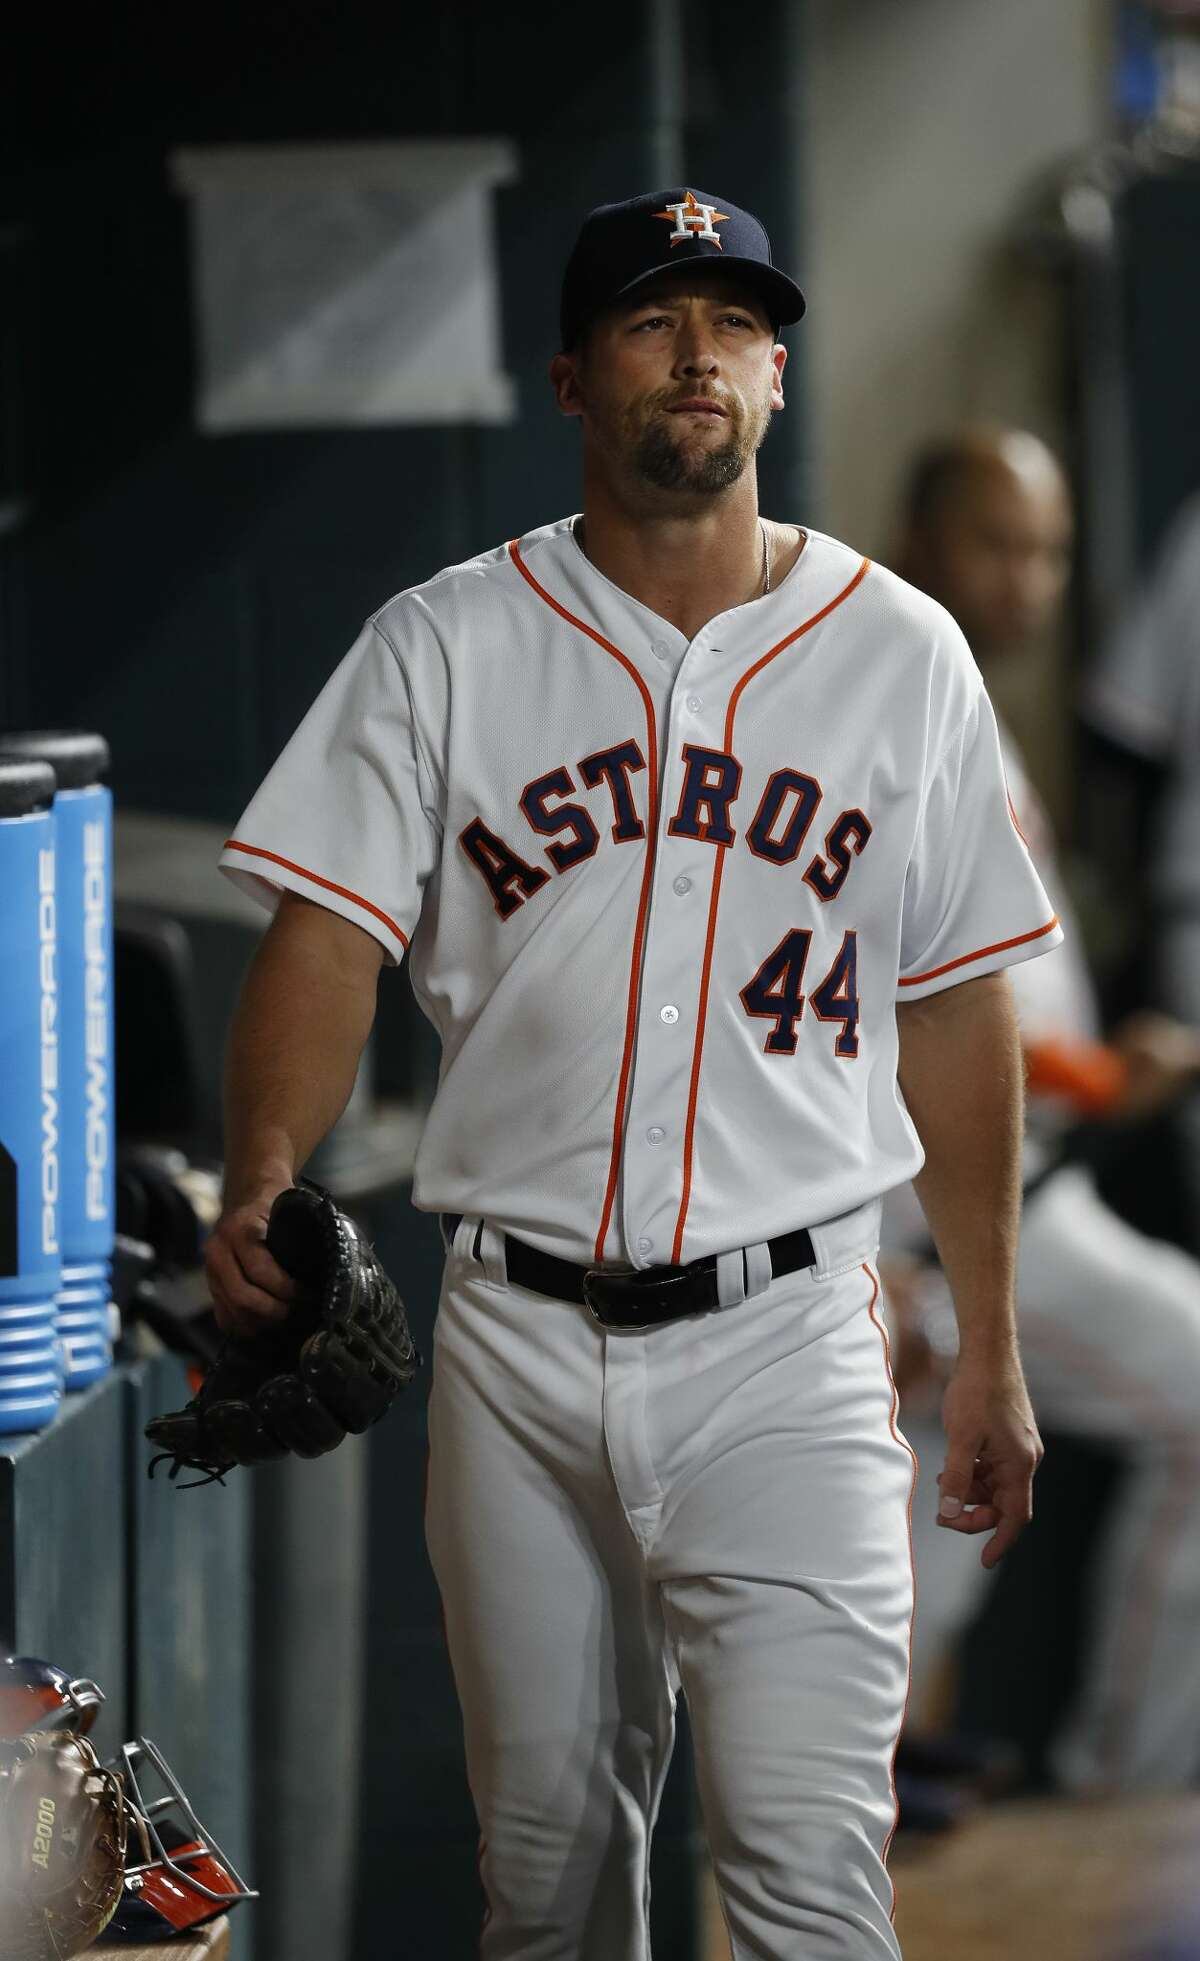 Houston Astros relief pitcher Luke Gregerson (44) reacts in the dugout after giving up six runs in the eighth inning of an MLB baseball game at Minute Maid Park, Saturday, April 8, 2017, in Houston. ( Karen Warren / Houston Chronicle )